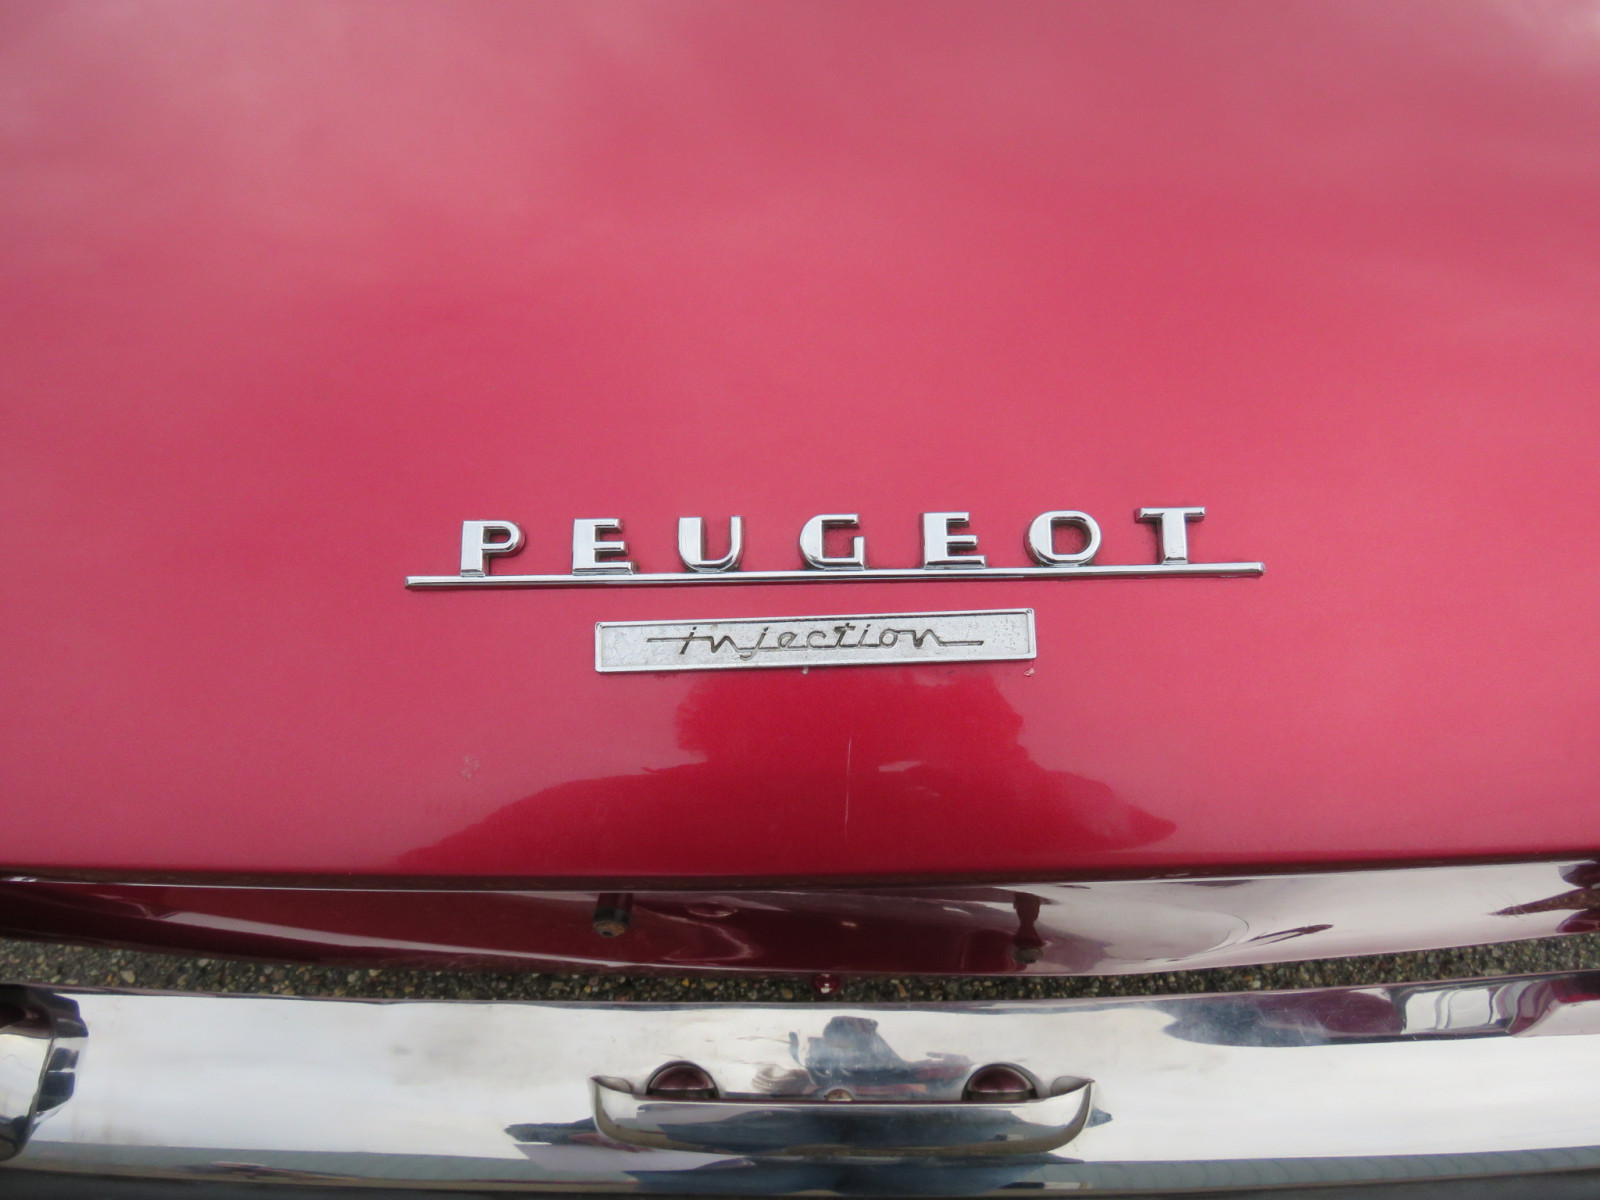 1972 Peugeot 504 Fuel Injected Convertible - Image 7